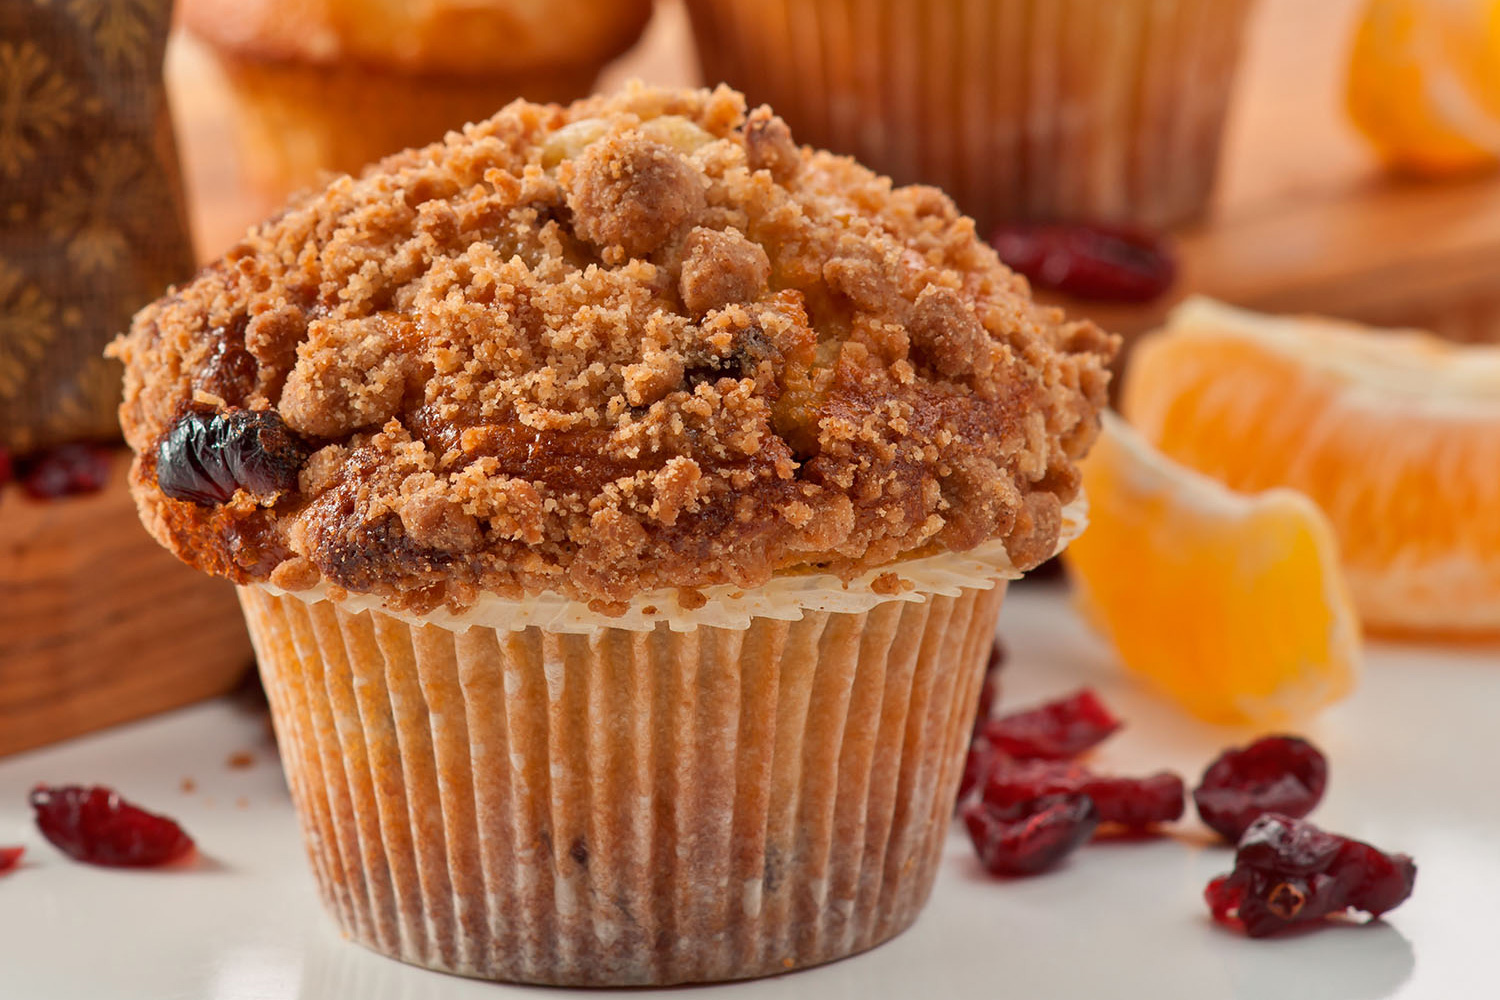 Cranberry Orange - Have your taste buds doing flips over this tangy and sweet blend of cranberry and orange flavors. Add fruit fillings or spreads and make muffins, morning sunshine loaves, coffee cake, cake rolls, and more.